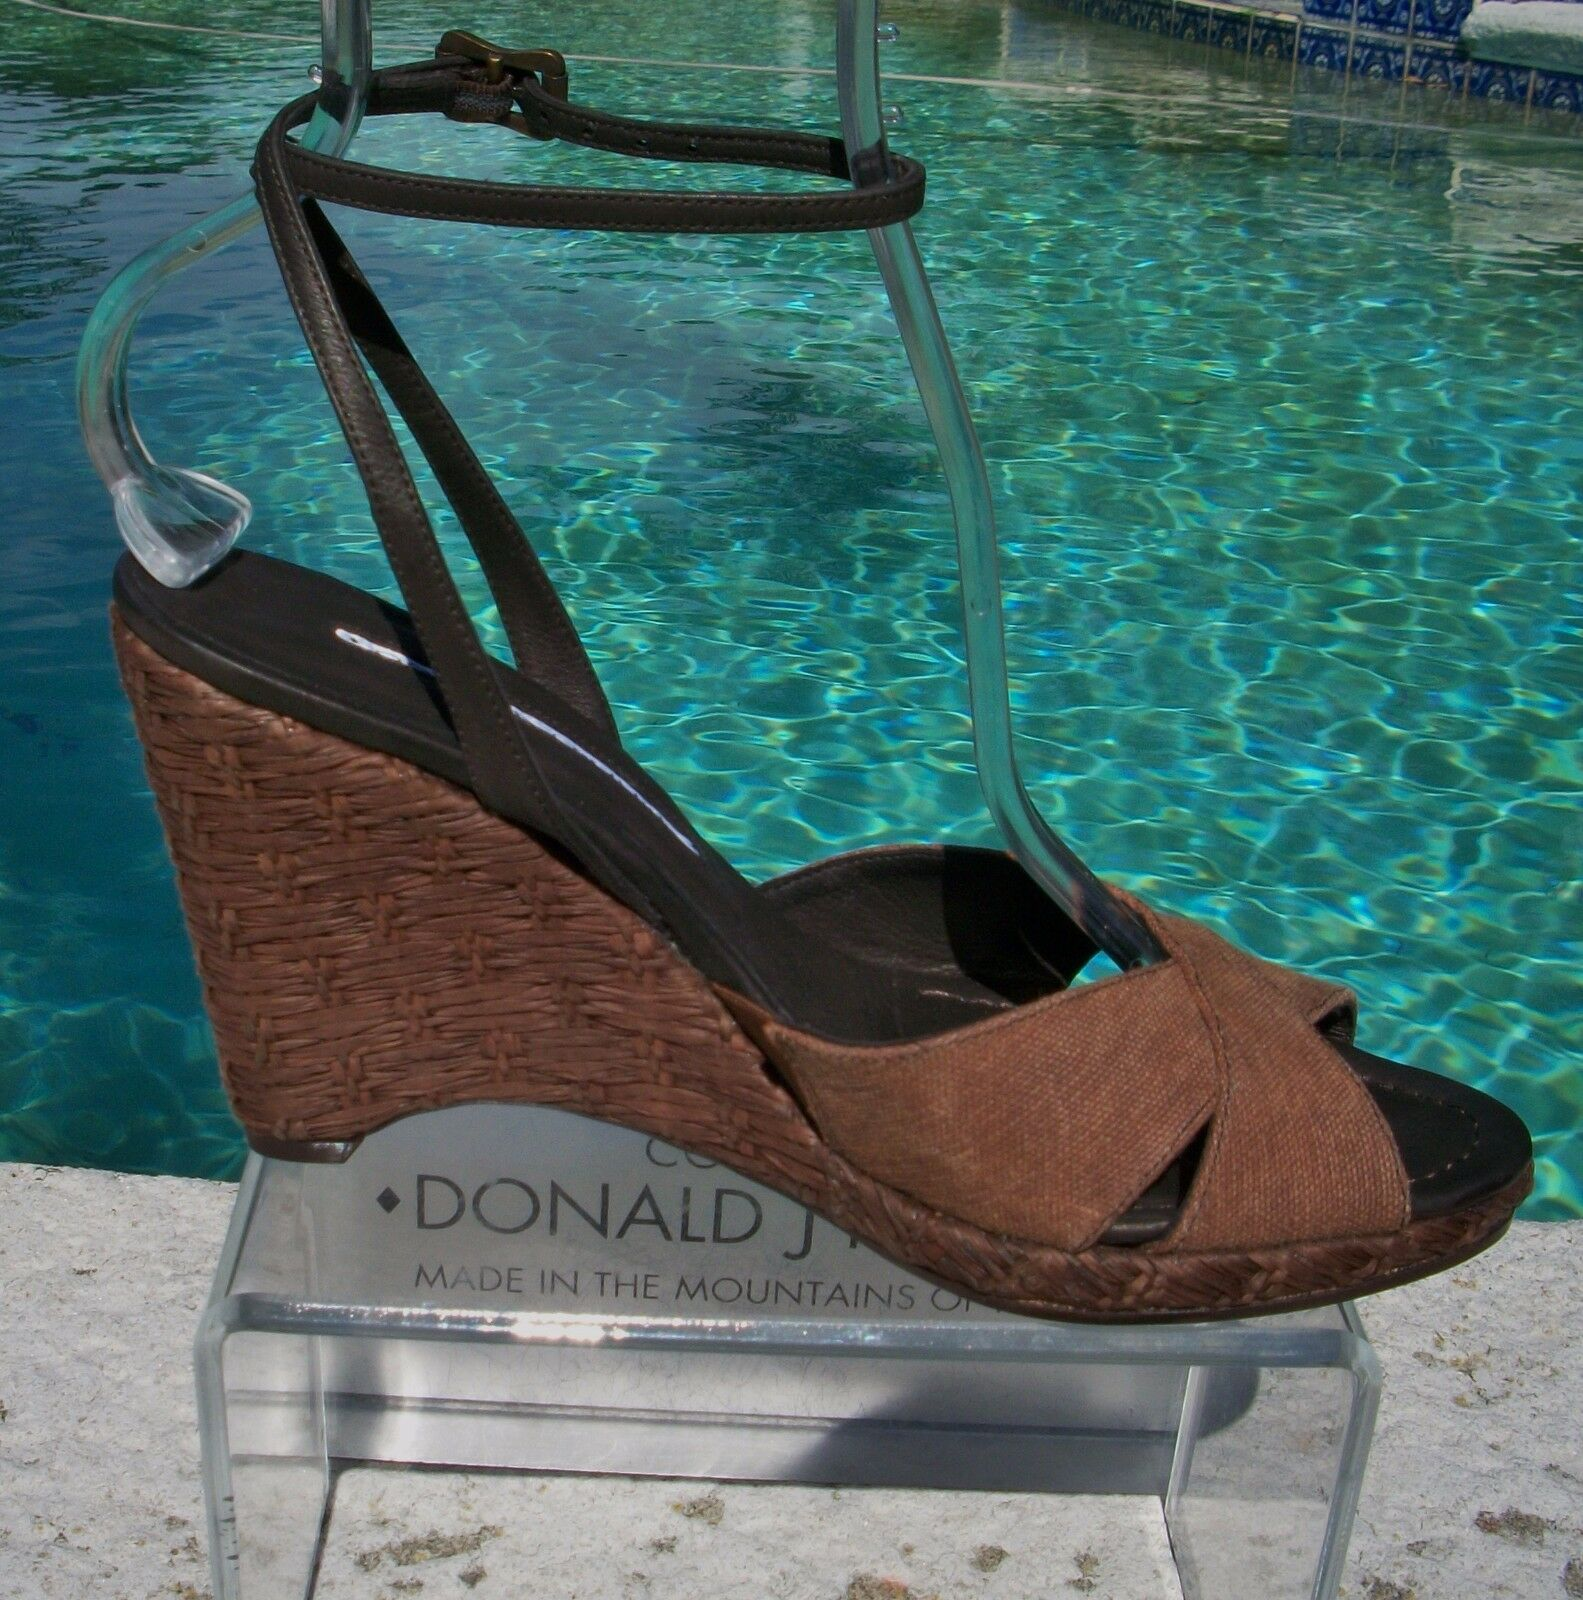 Donald Pliner Couture Leather Leather Leather Wedge shoes New Cork Heel Sandal Slide 10  375 NIB b8e0b1